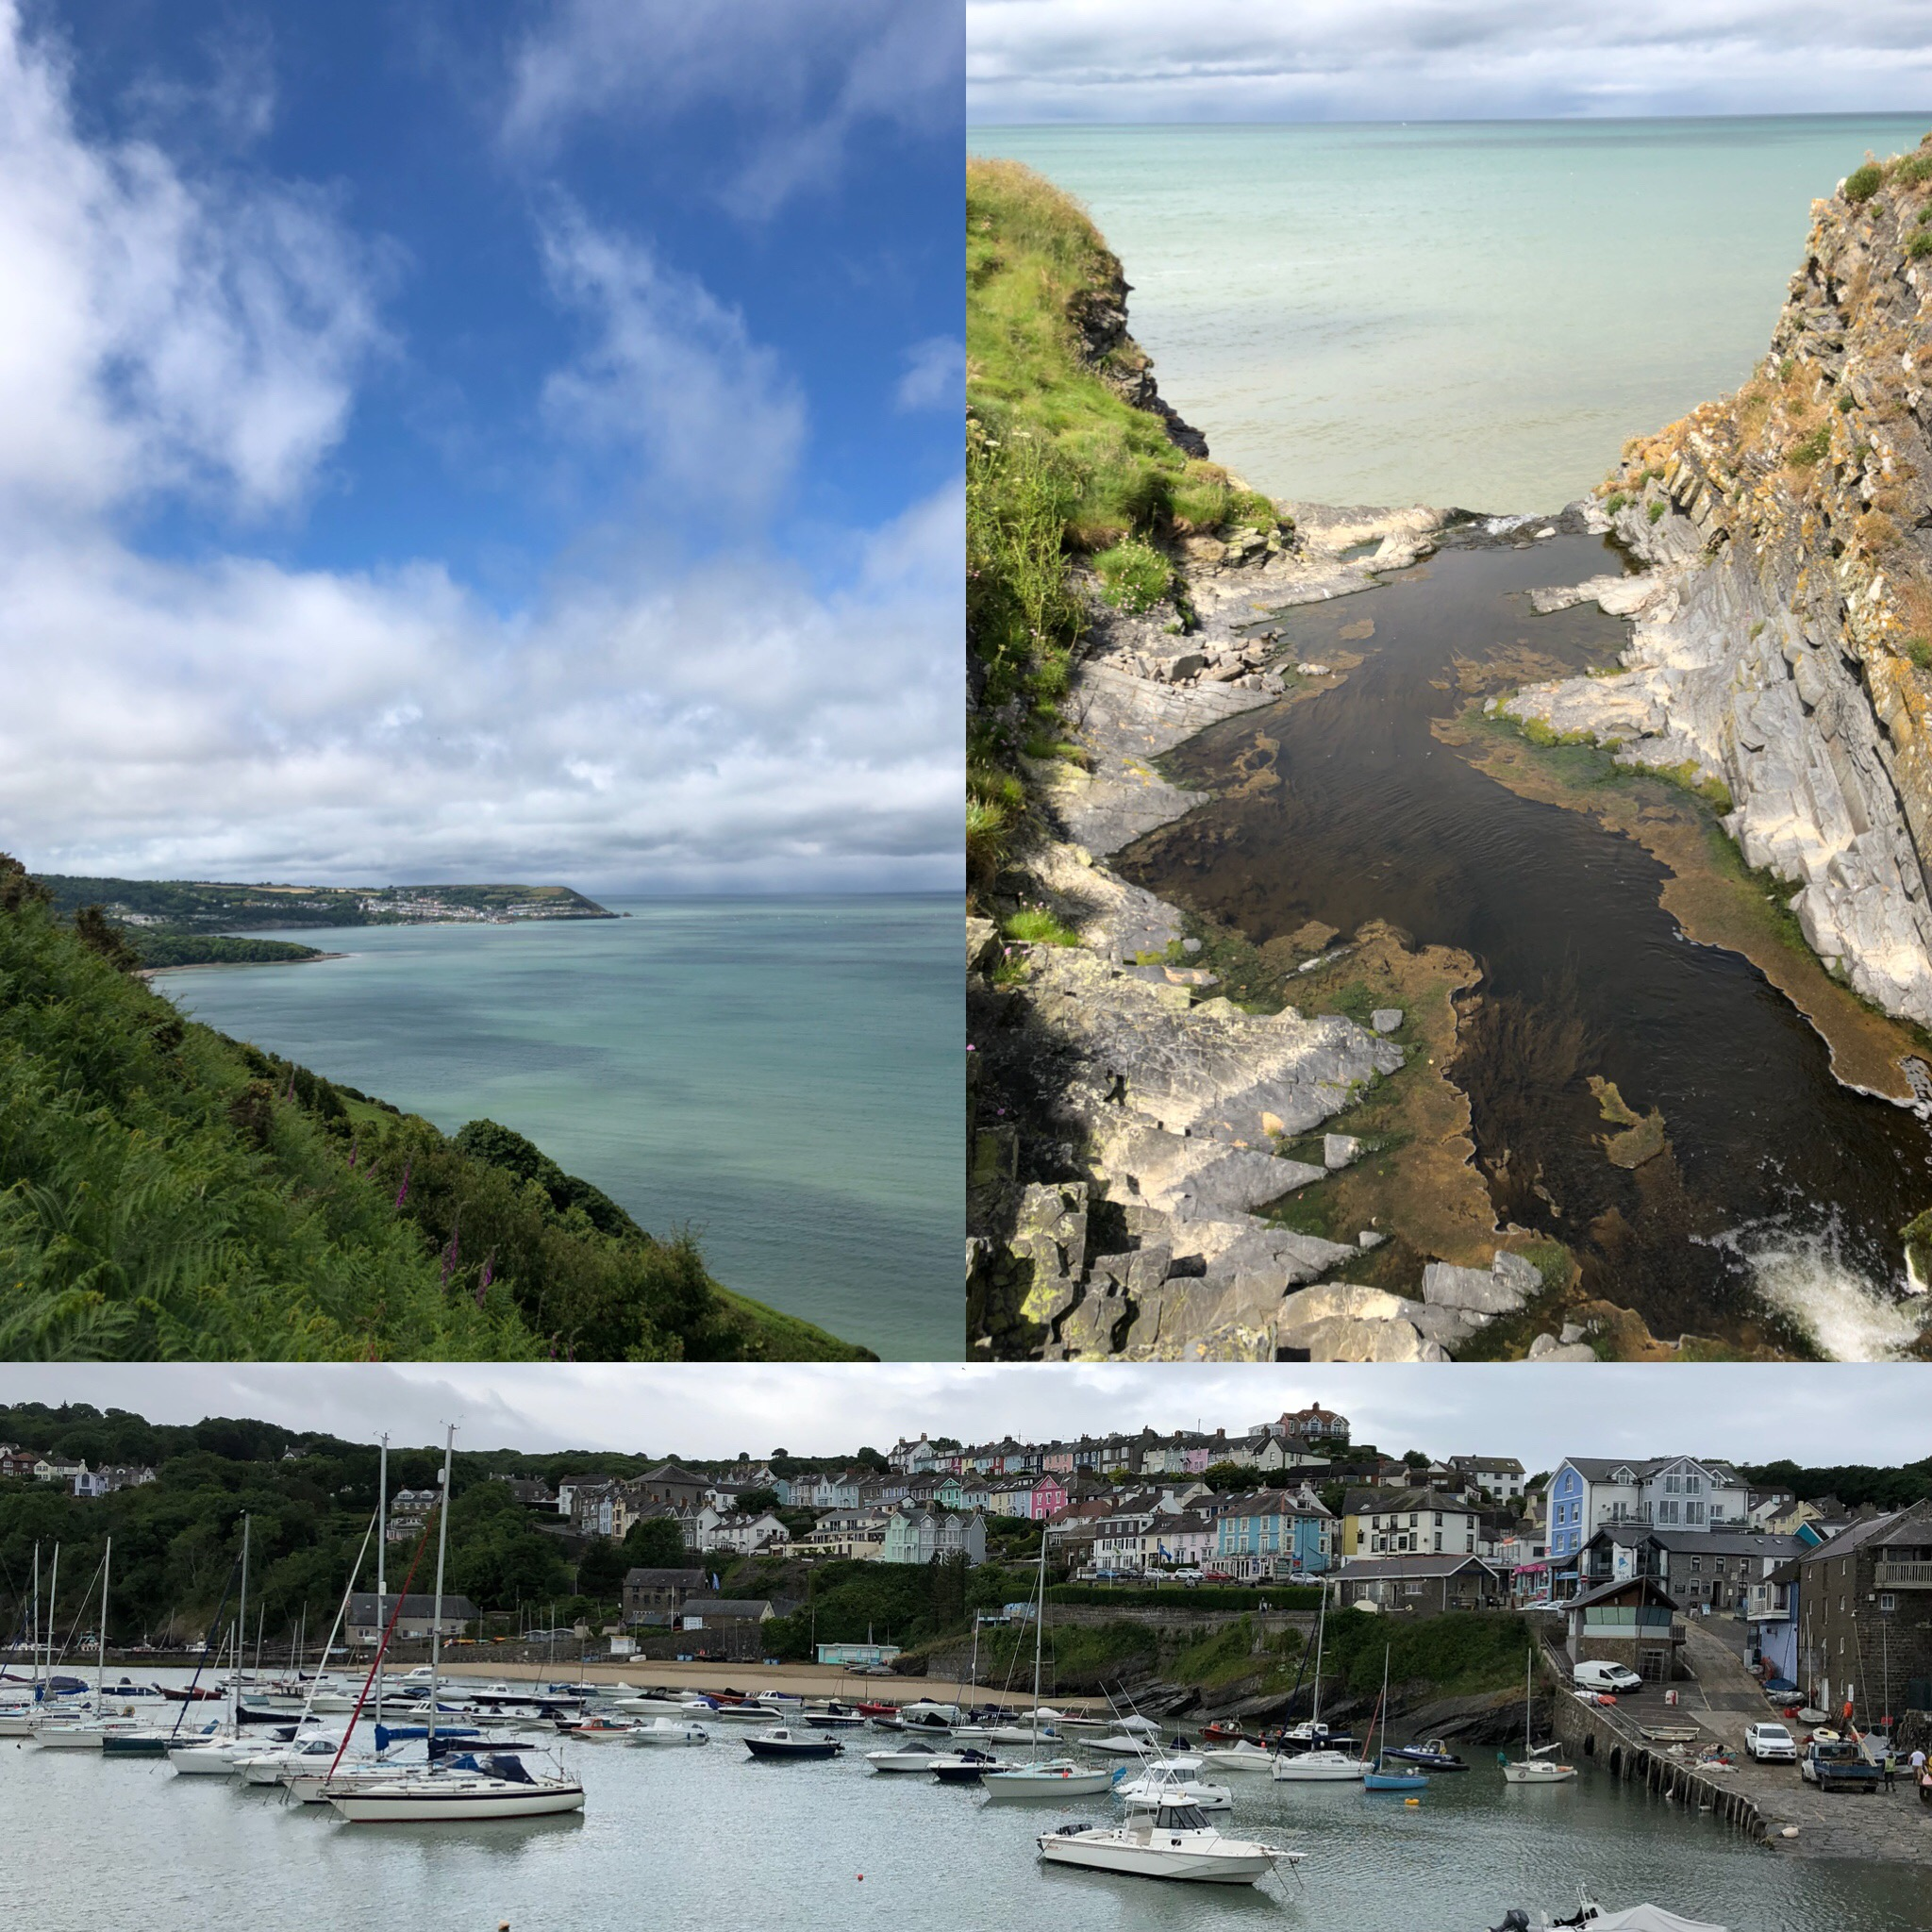 Views Of New Quay, Wales And Nearby Cliffs